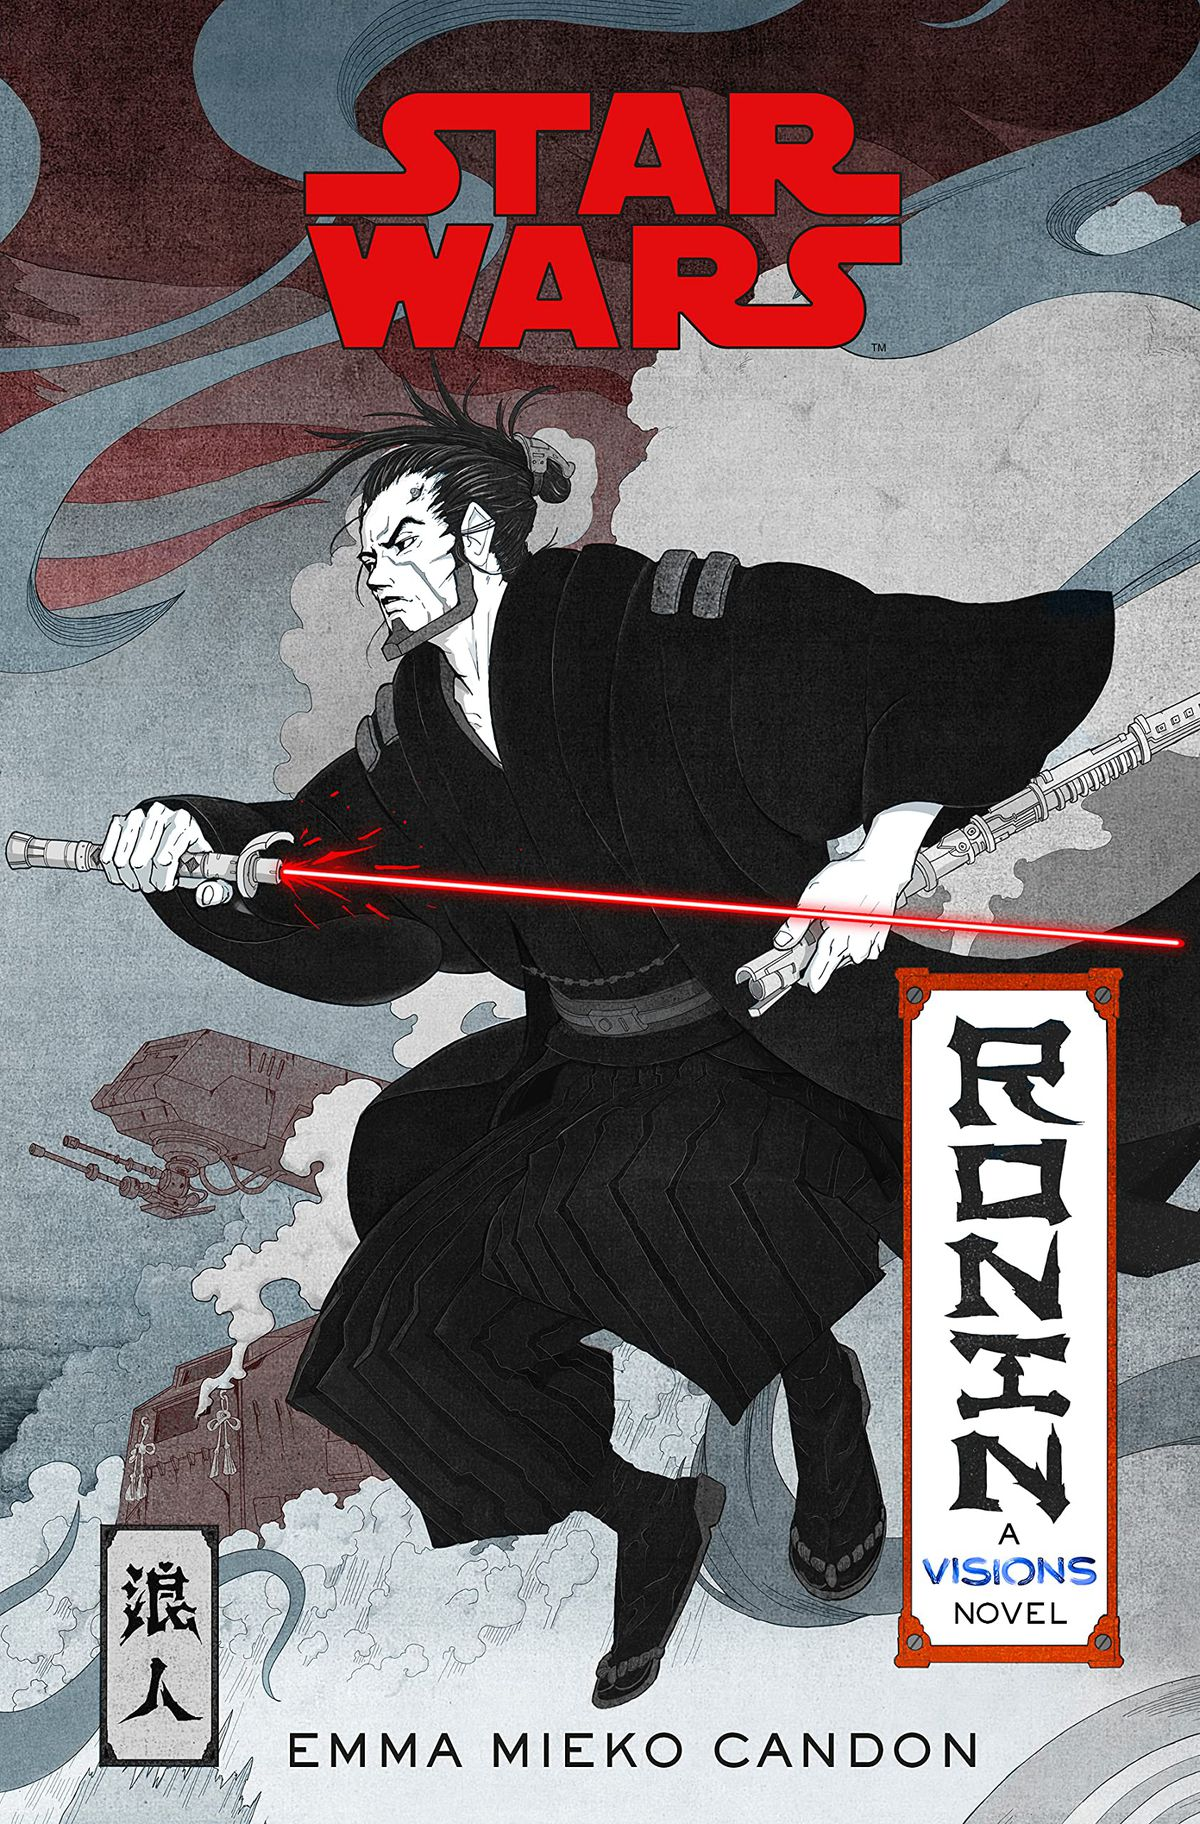 Star Wars Visions: Ronin by Emma Mieko Candon book cover featuring a samurai jedi with a red lightsaber